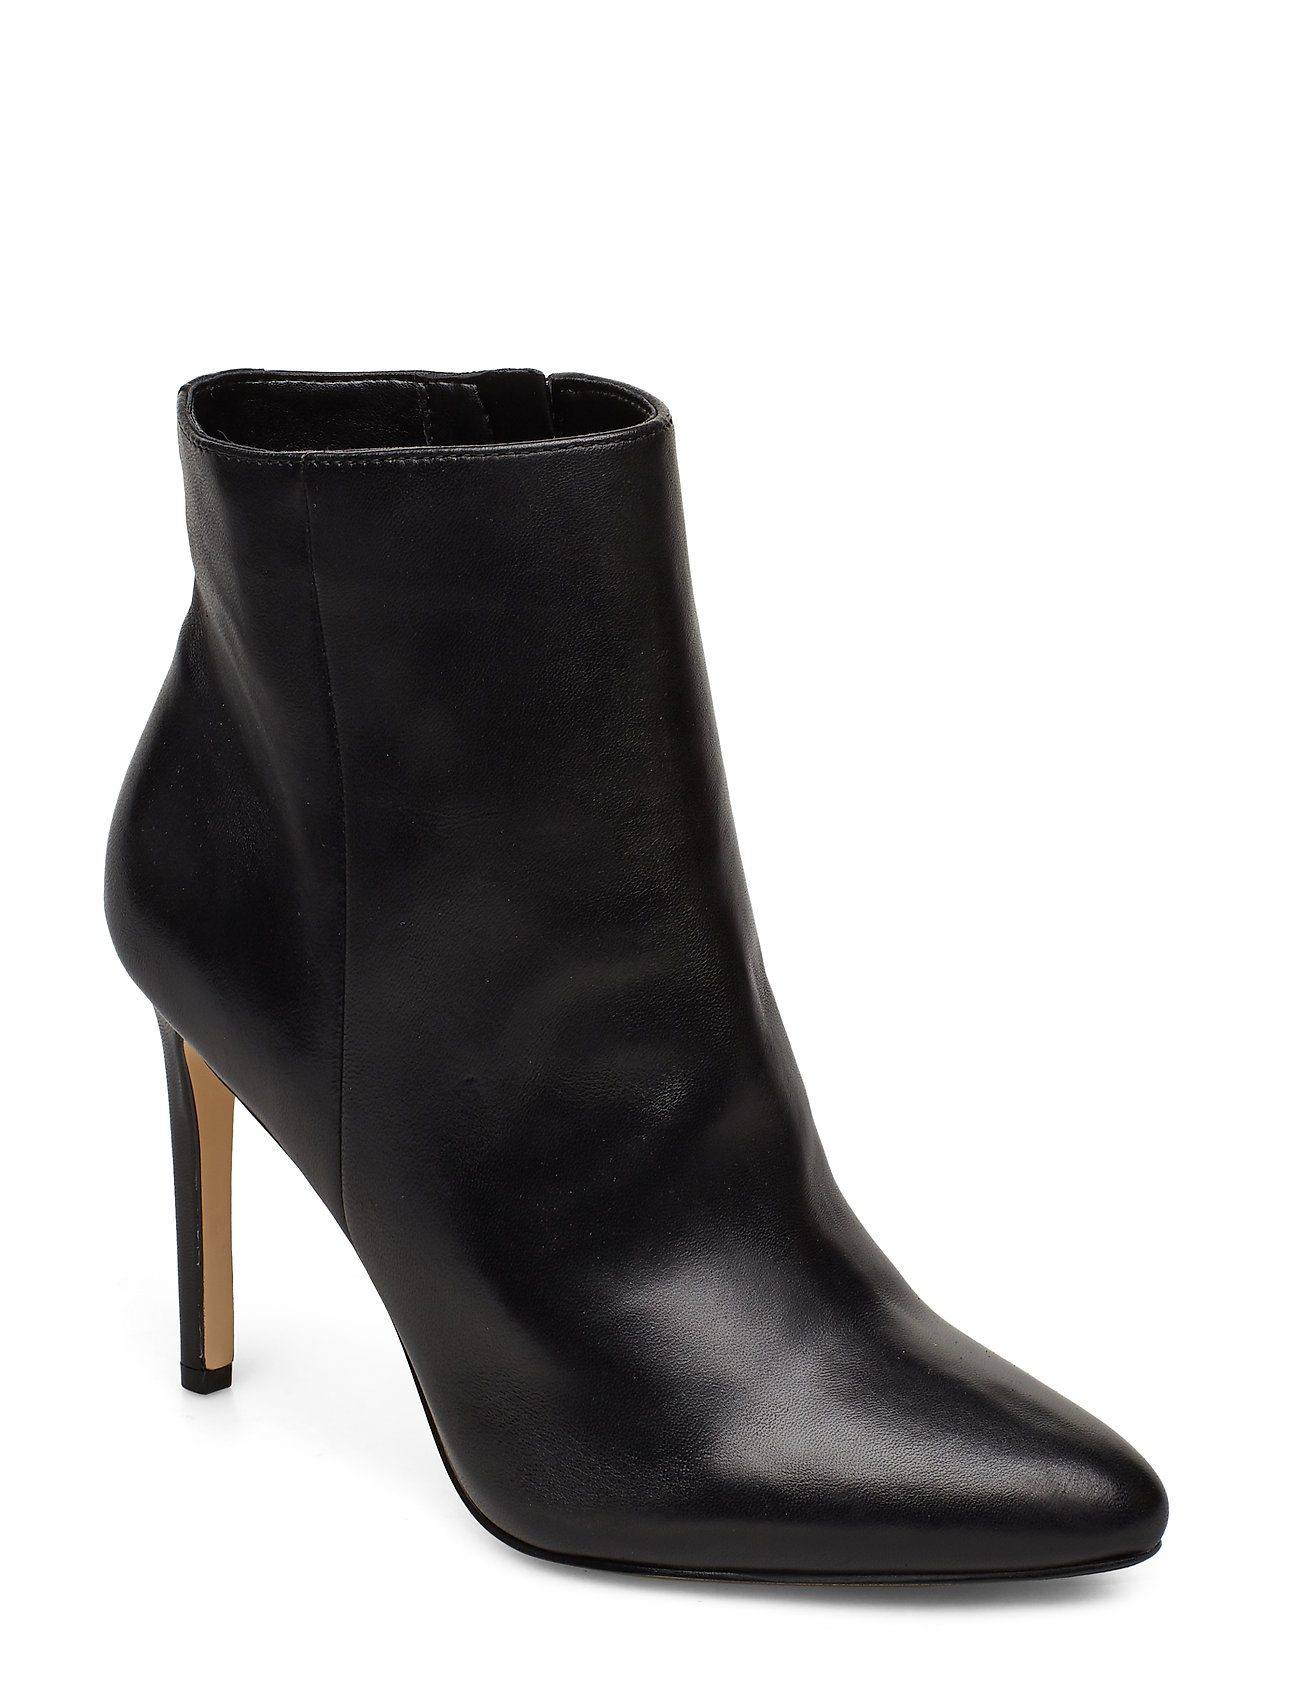 GUESS Tabare/Stivaletto /Lea Shoes Boots Ankle Boots Ankle Boots With Heel Schwarz GUESS